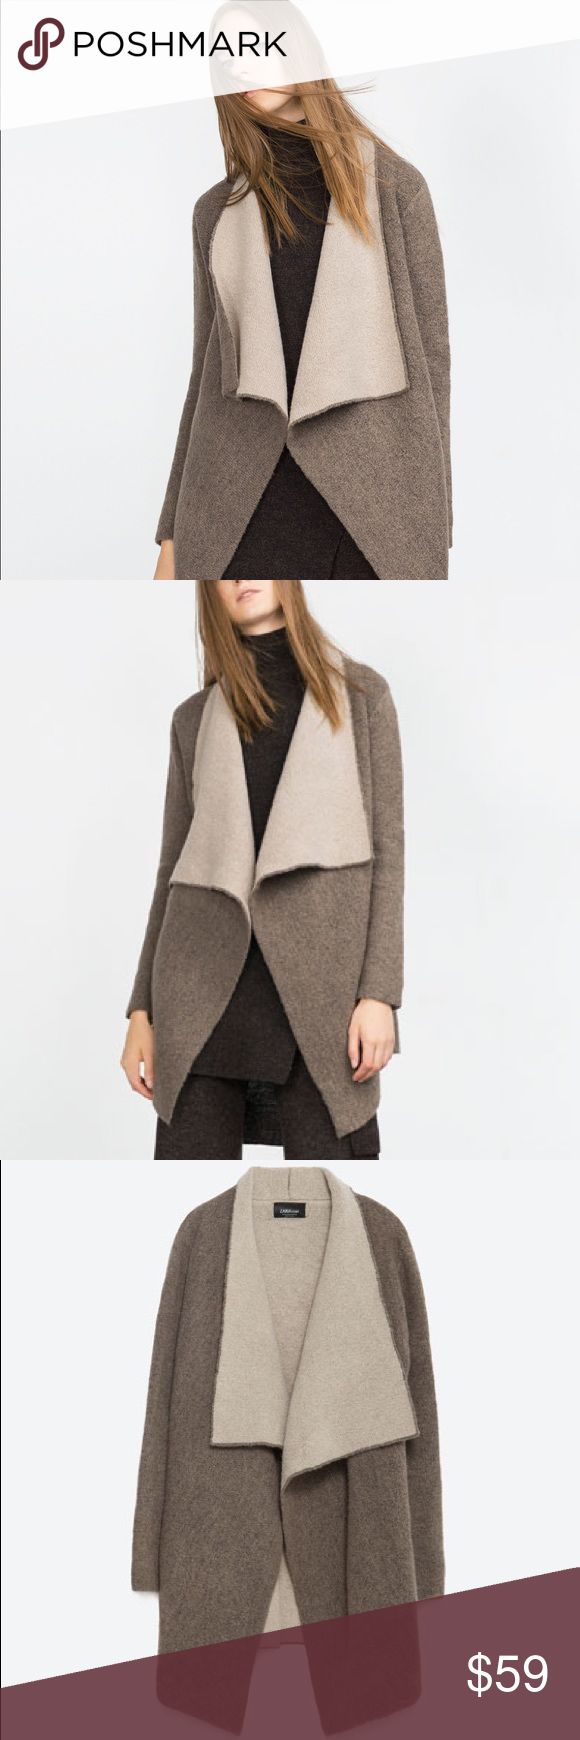 SUPERSOFT TWO-TONED OPEN CARDIGAN Gorgeous dark taupe and light taupe open cardigan.. super soft texture!! Really comfortable. Wool/Acrylic/Polyester blend. Cozy and beautiful. Brand new with tags. Zara Sweaters